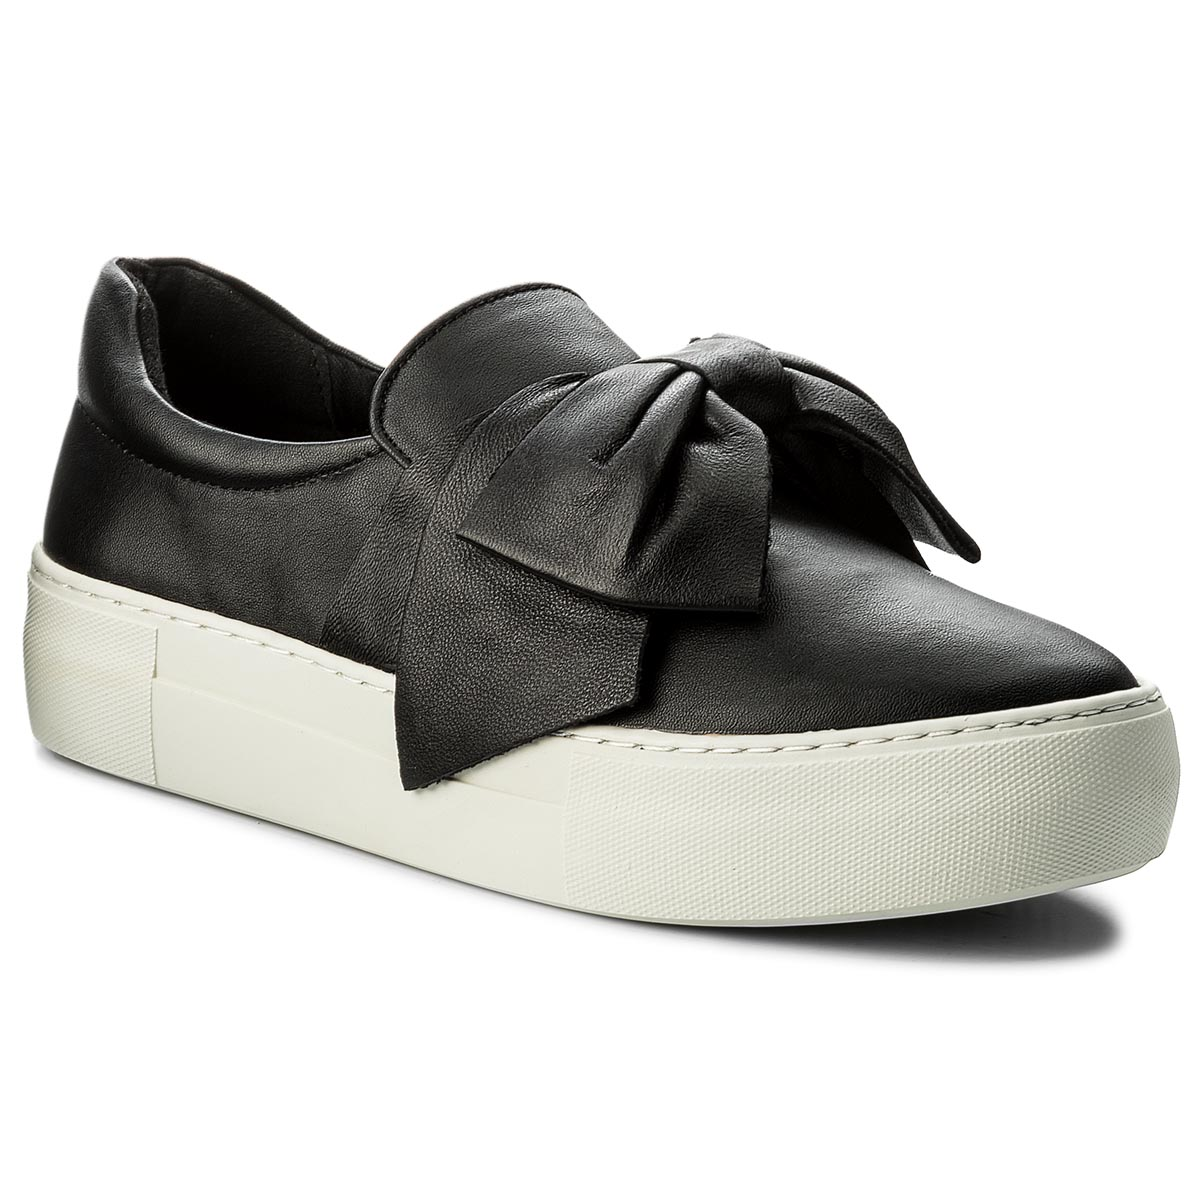 Sneakersy STEVE MADDEN - Empire Slip On Sneaker 91000845-07075-01019 Black/Black